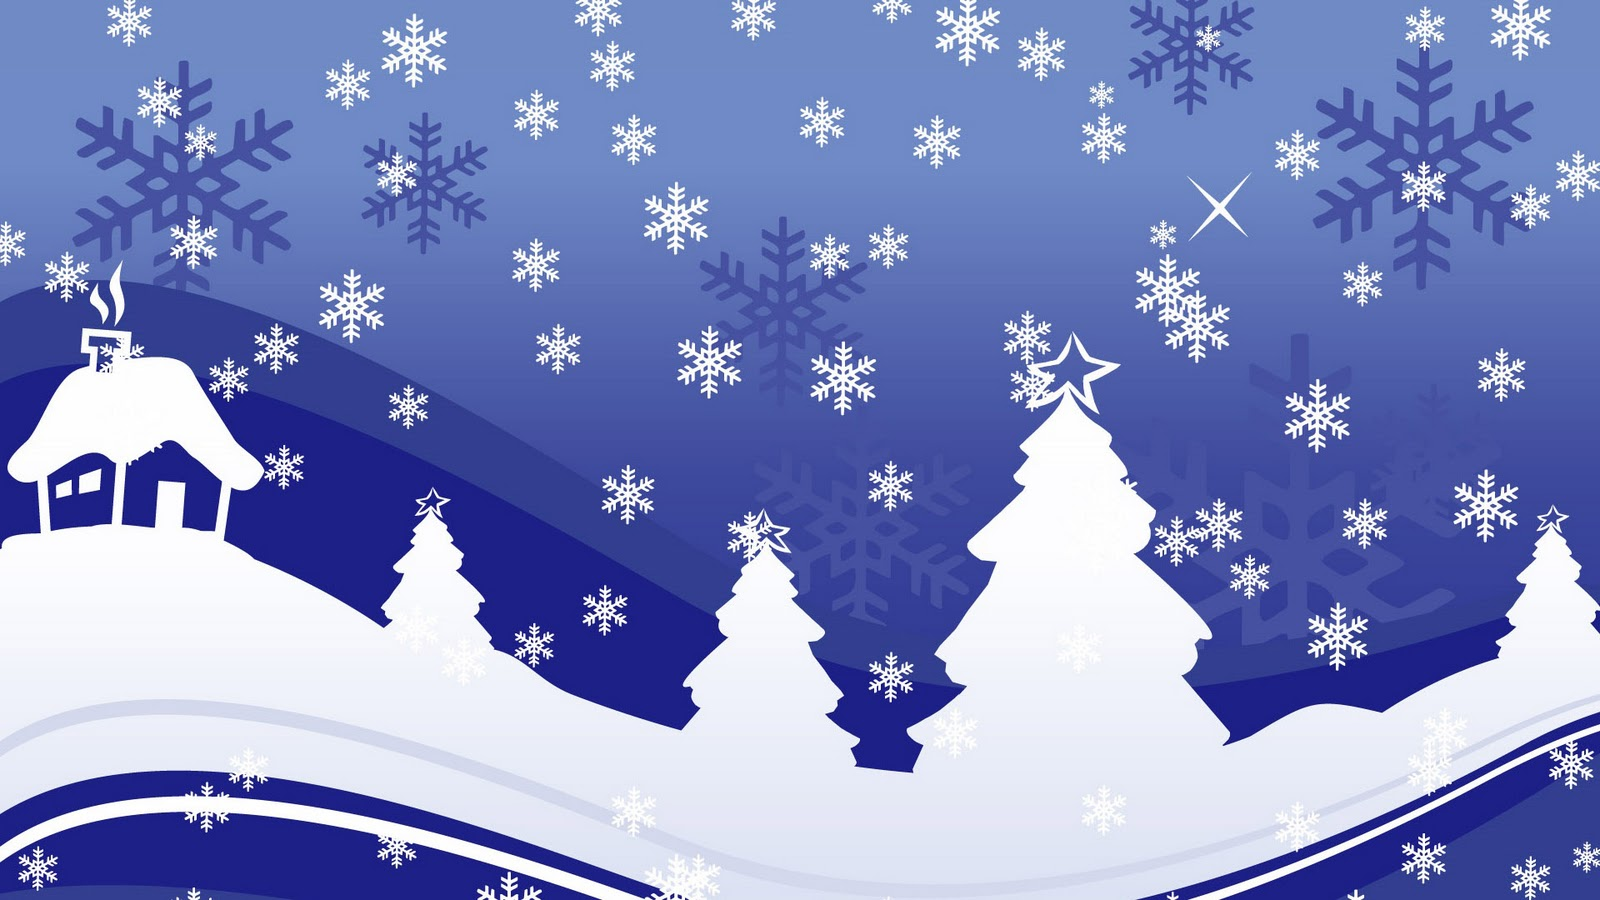 http://1.bp.blogspot.com/-qDxpwfiYFAc/UNEZdZRioqI/AAAAAAAABYg/MPjtQPXjlgw/s1600/Best-top-desktop-christmas-wallpapers-hd-christmas-wallpaper-picture-image-photo-28.jpg